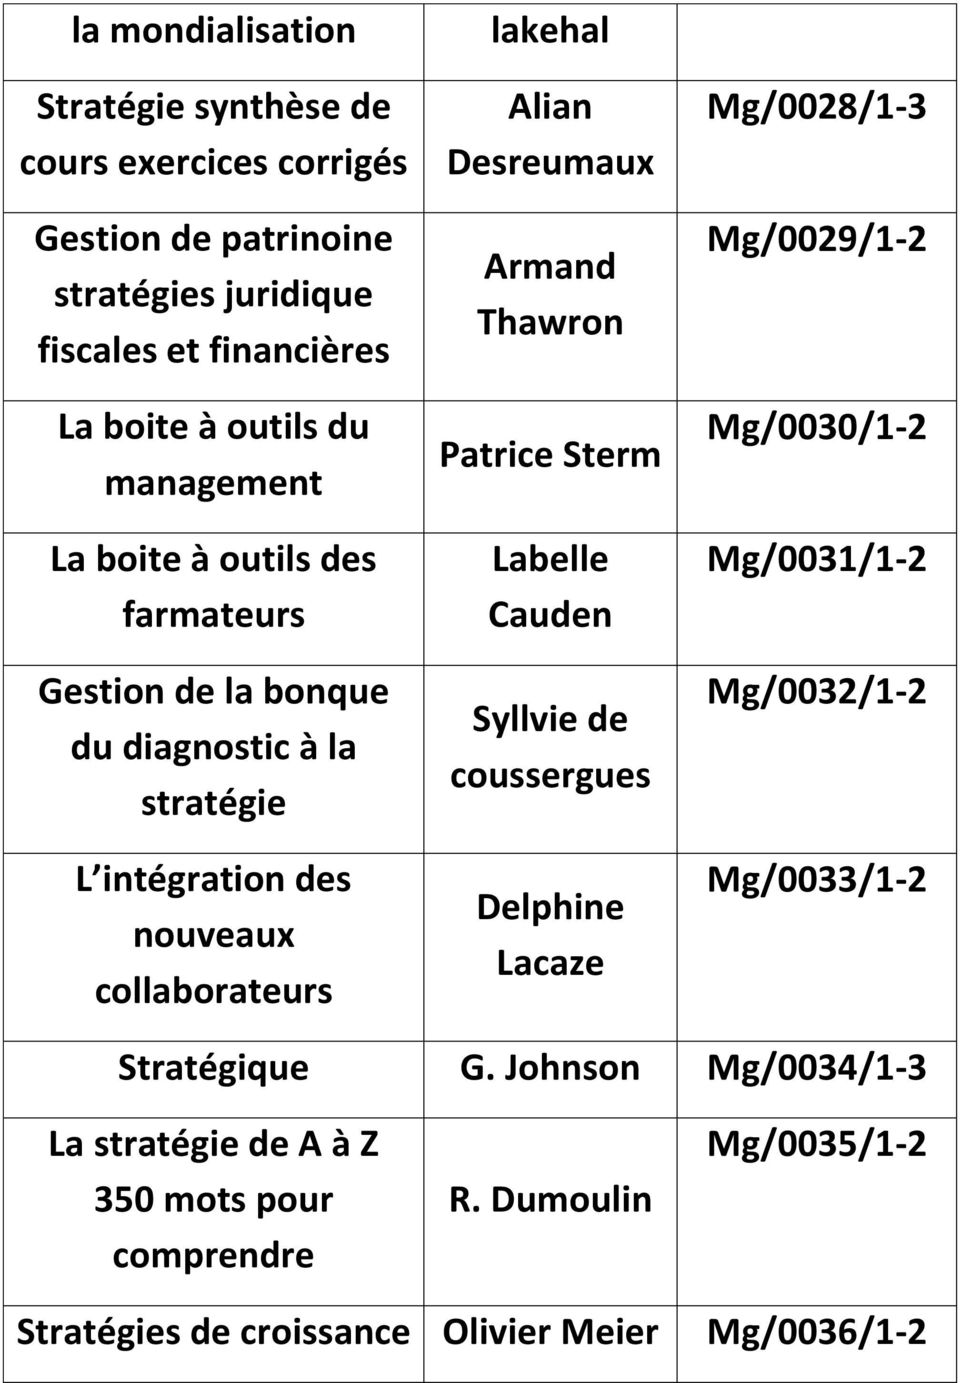 Armand Thawron Patrice Sterm Labelle Cauden Syllvie de coussergues Delphine Lacaze Mg/0028/1-3 Mg/0029/1-2 Mg/0030/1-2 Mg/0031/1-2 Mg/0032/1-2